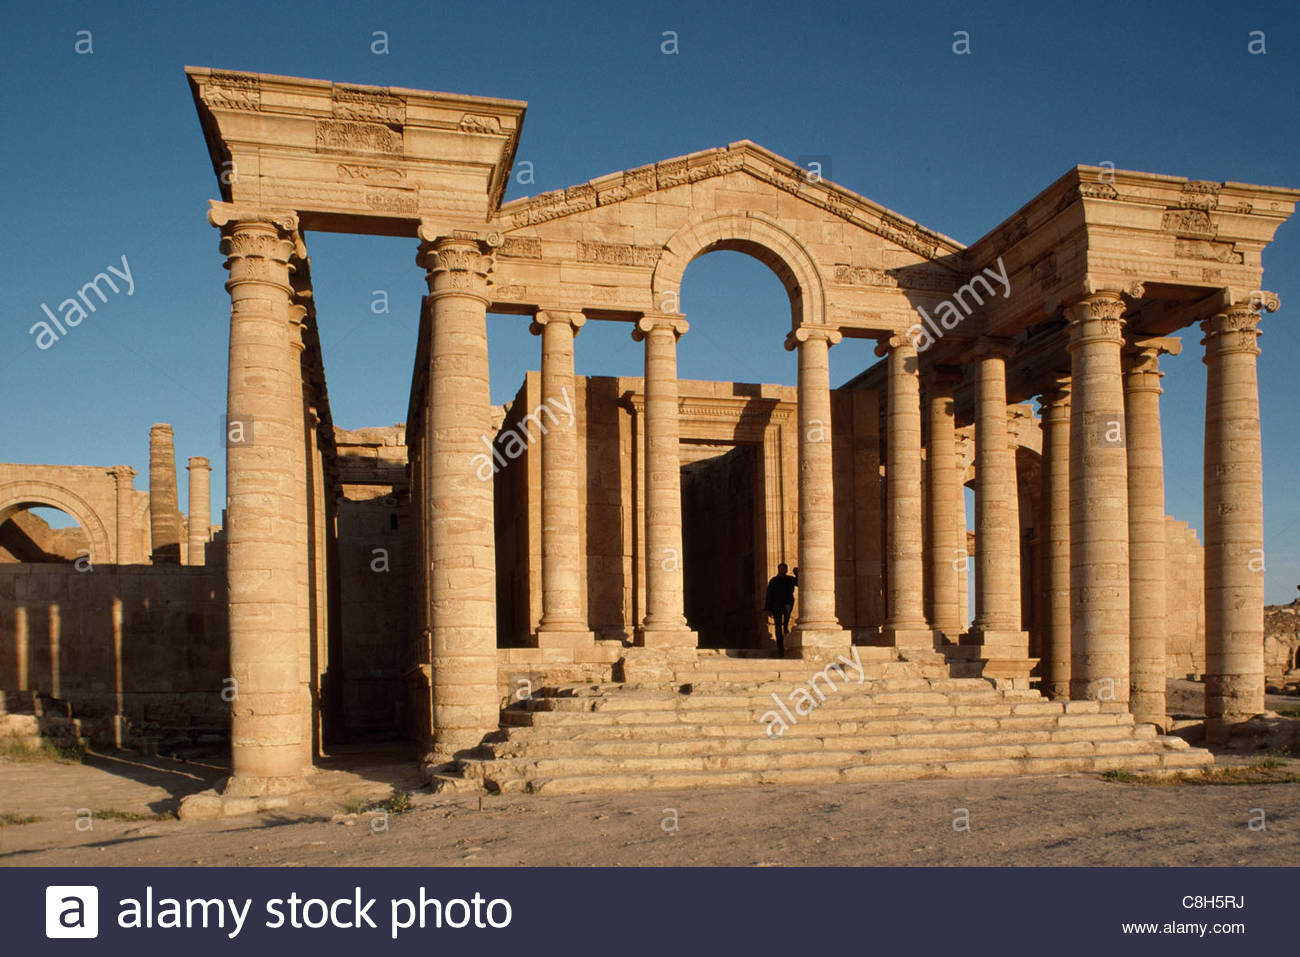 The remains of the ancient Parthian city of Hatra. - Stock Image